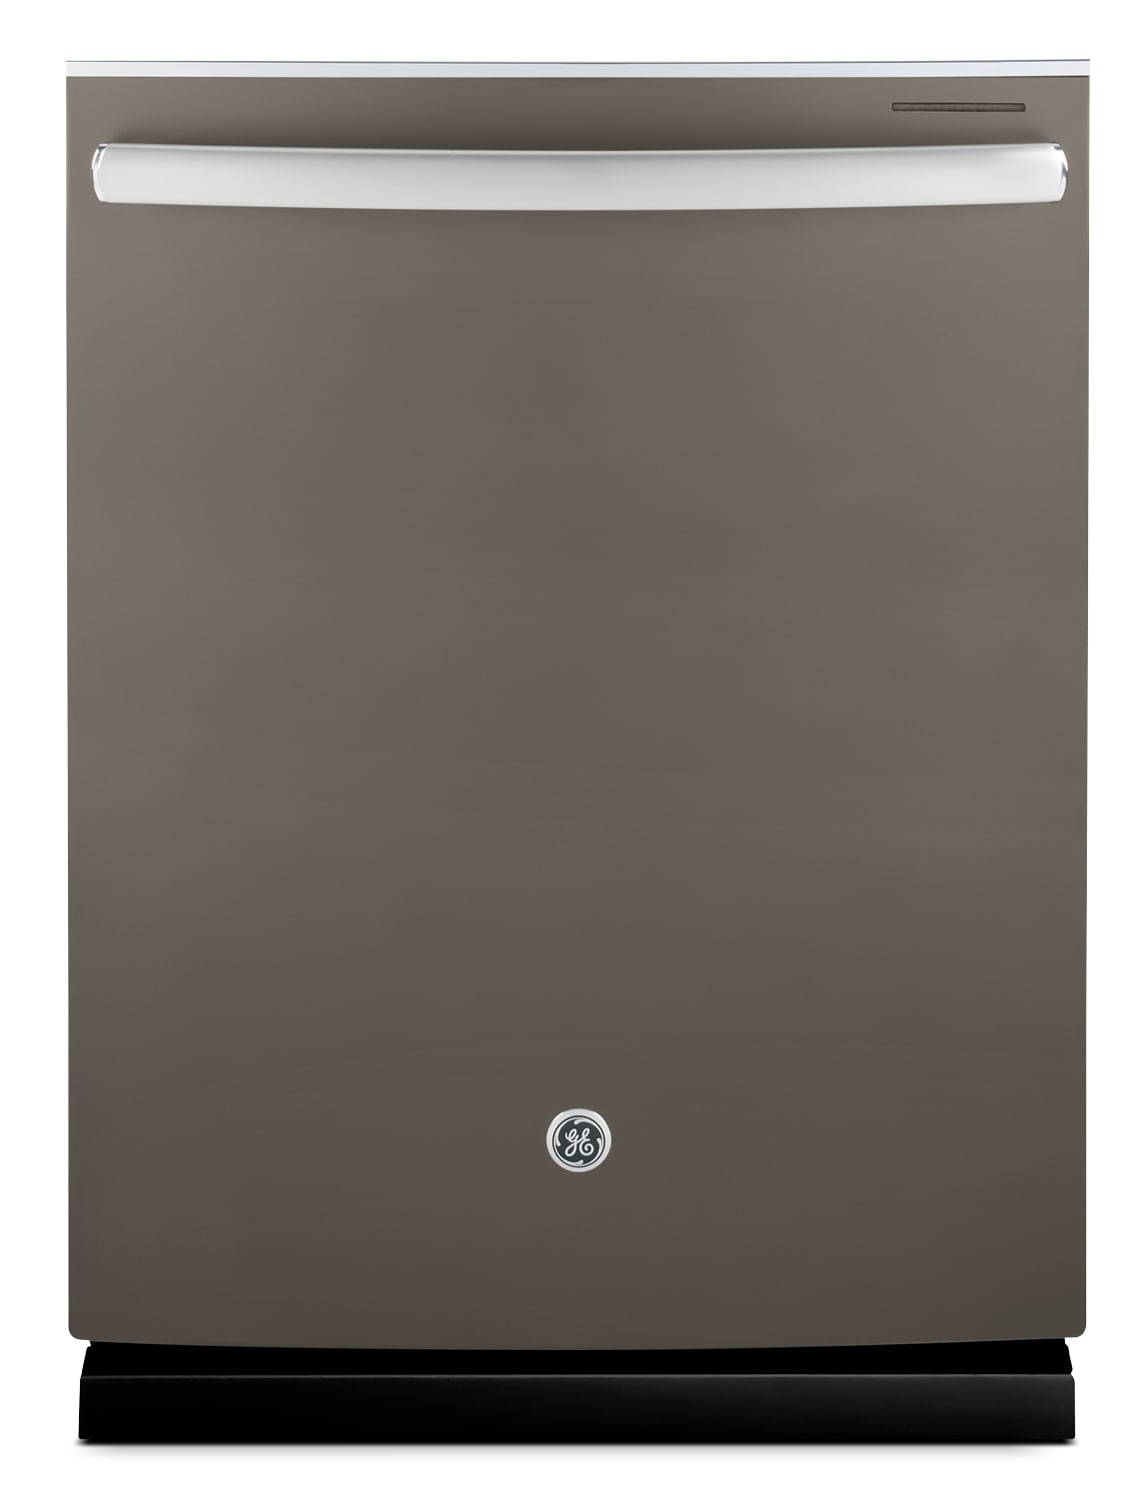 Clean-Up - GE Tall Tub Built-In Dishwasher – Slate